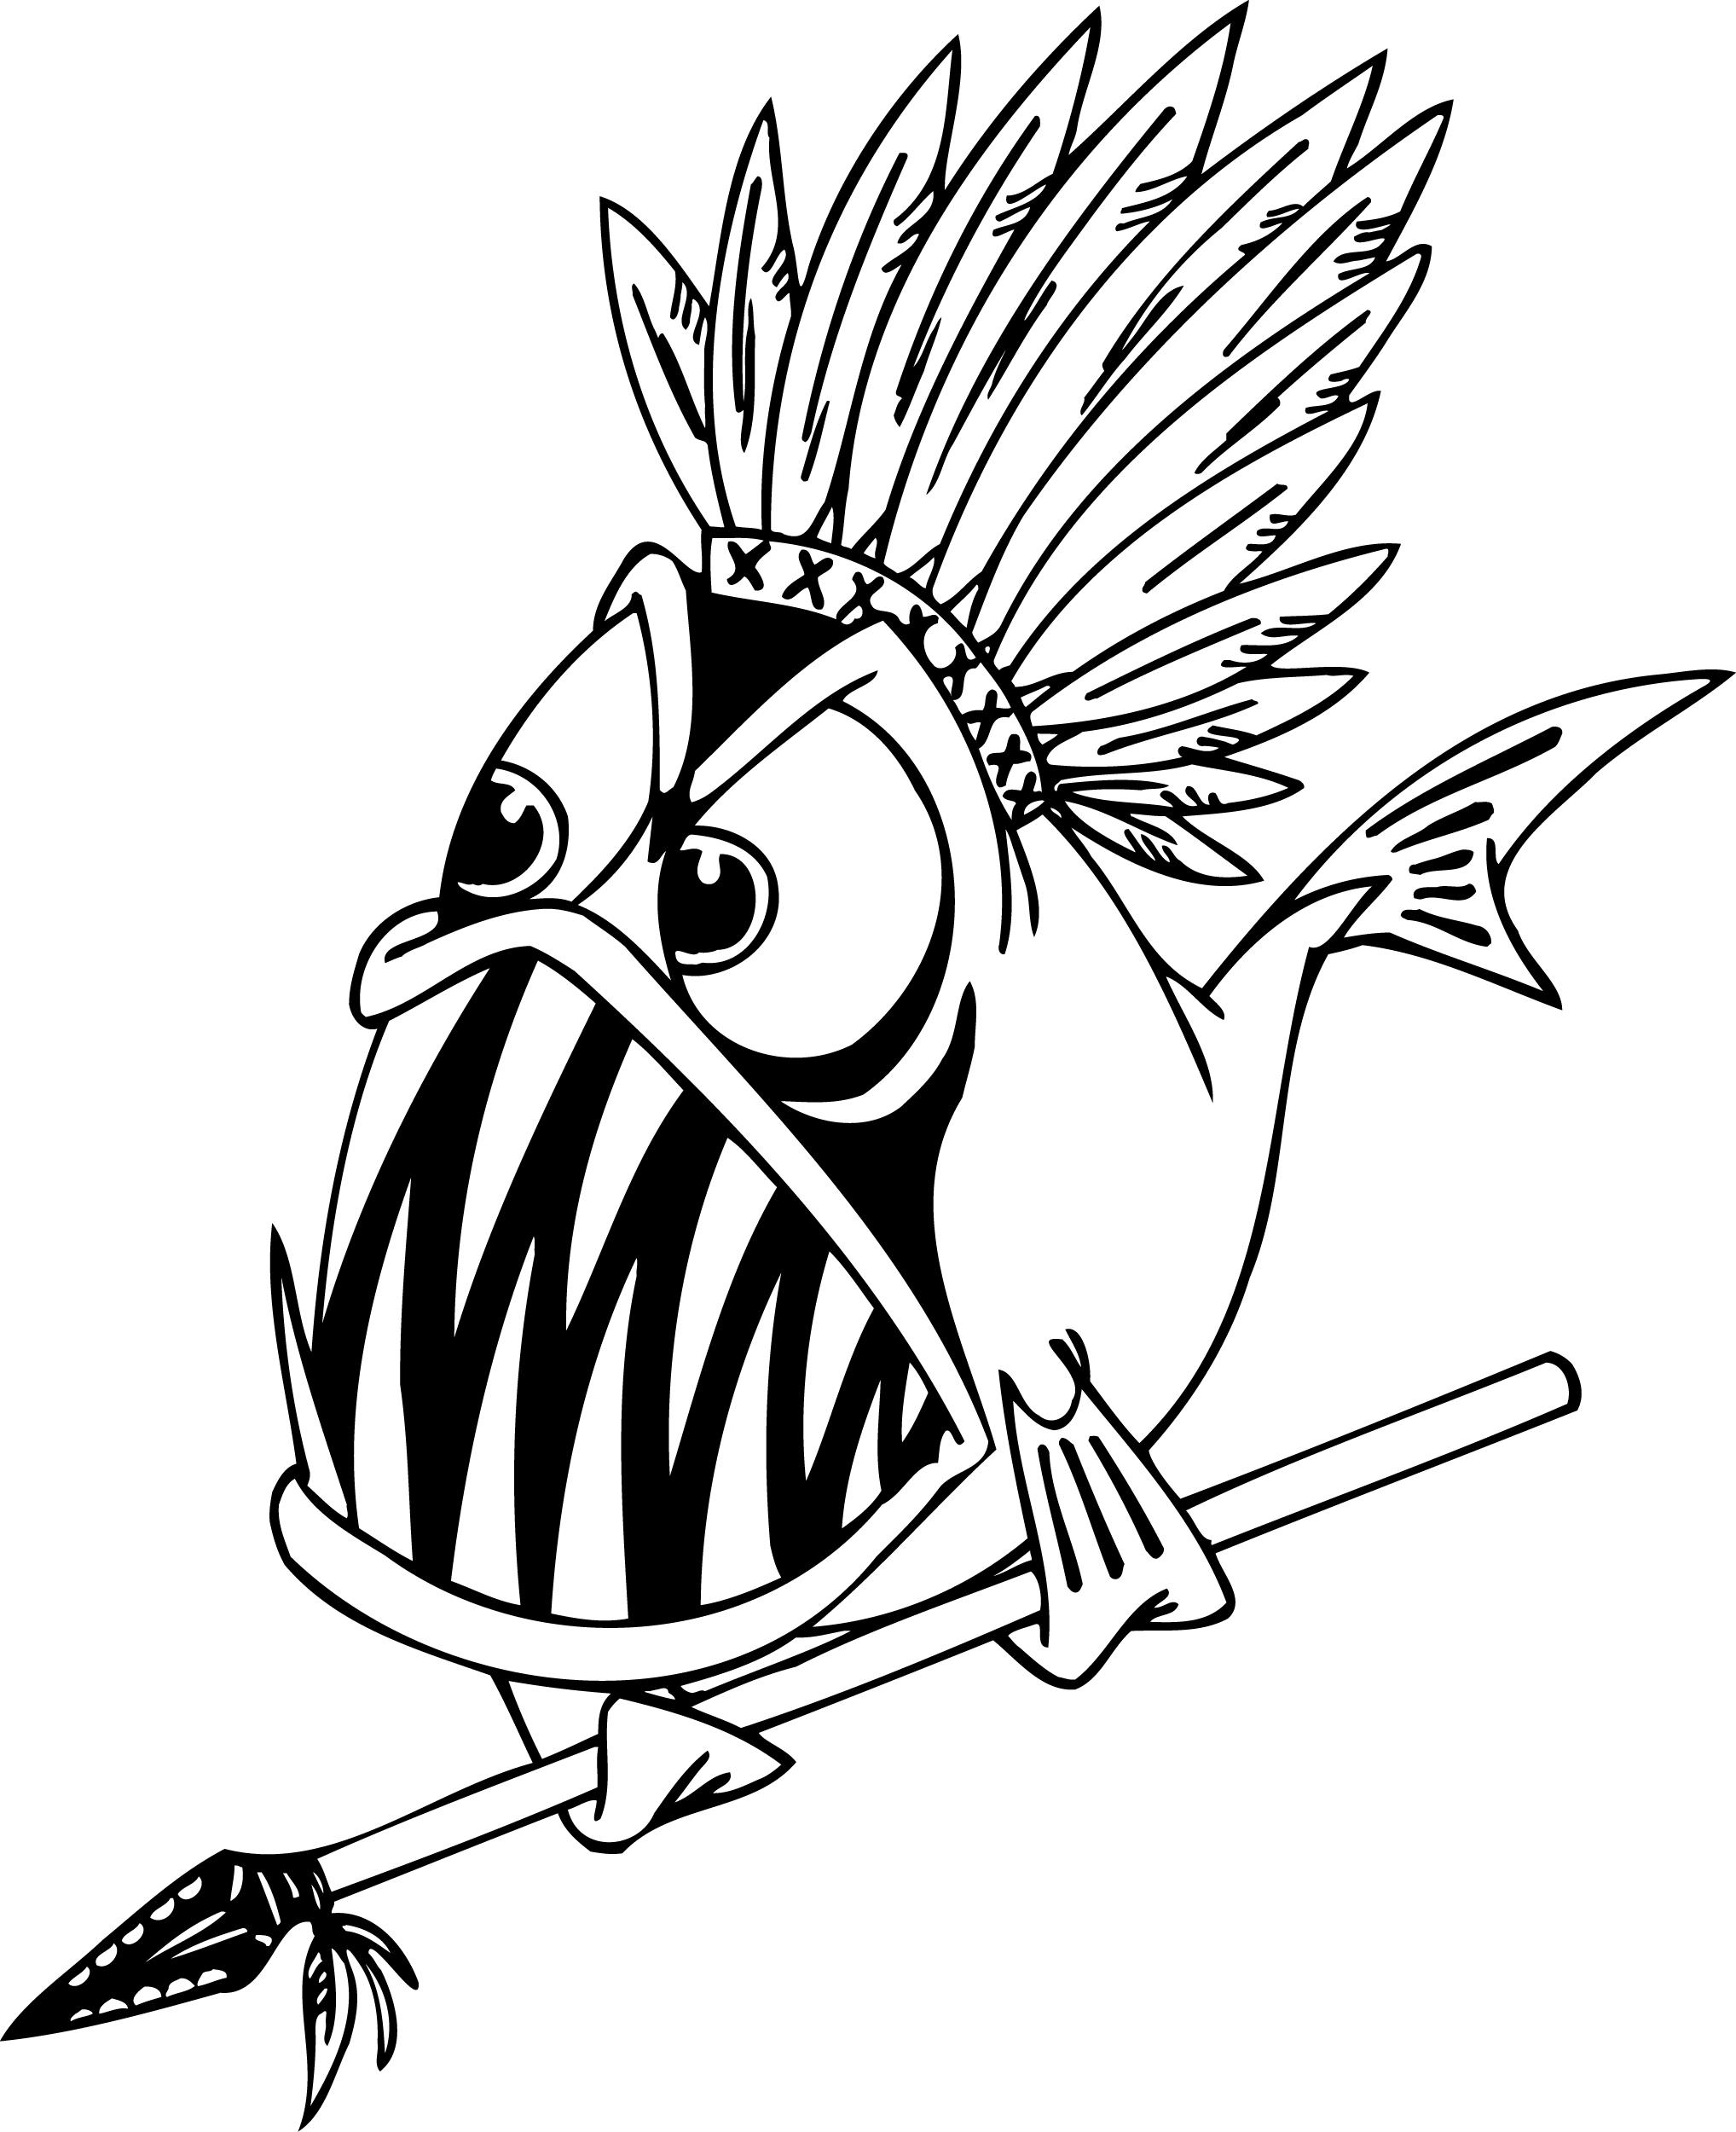 detailed fish coloring pages detailed fish coloring pages at getcoloringscom free coloring detailed pages fish